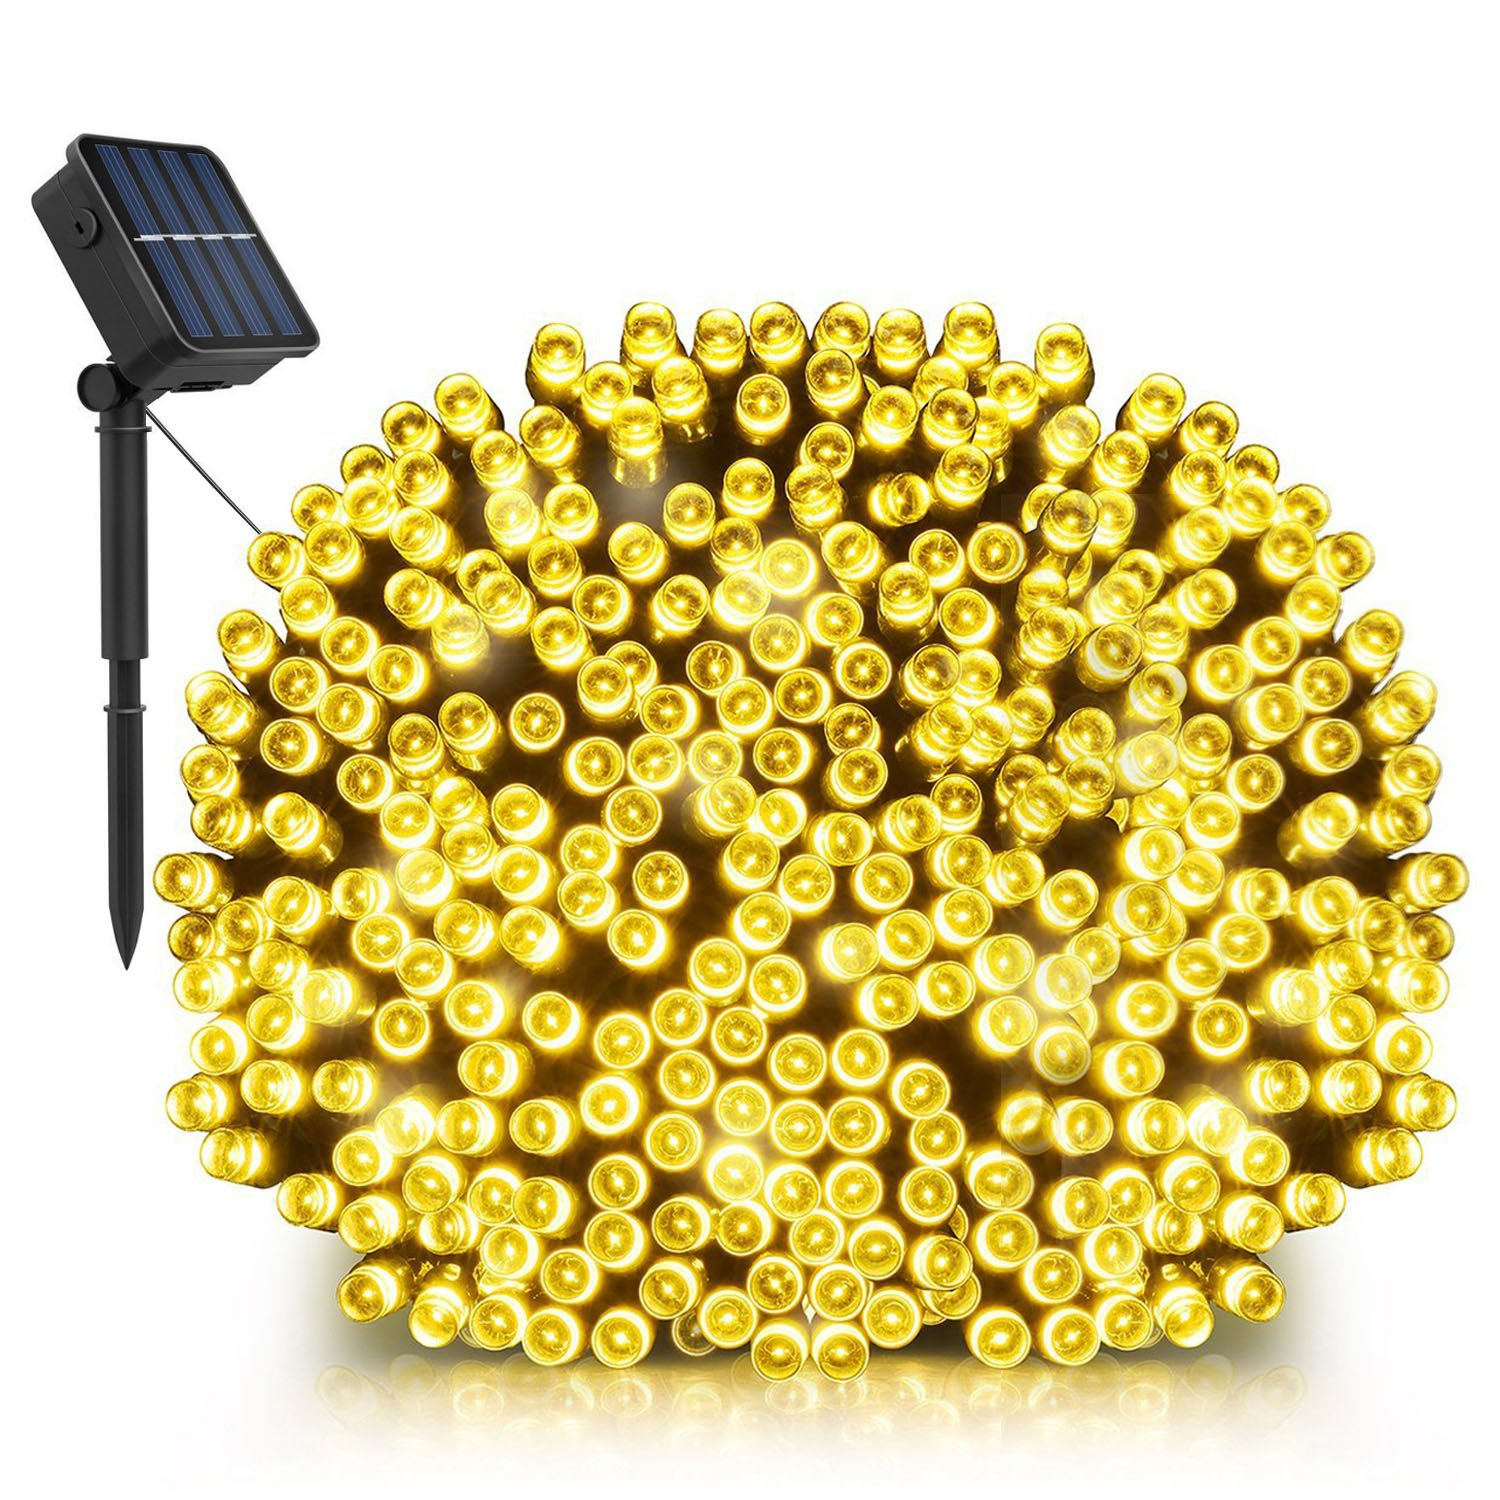 Solar String Lights, LDesign 72ft 200 LED Solar Twinkle Romantic Powered Starry Fairy Lights Waterproof(IP65) Outdoor Indoor String Lights for Garden,Home,Christmas,Party,Mall-8 Modes Warm White LD-599